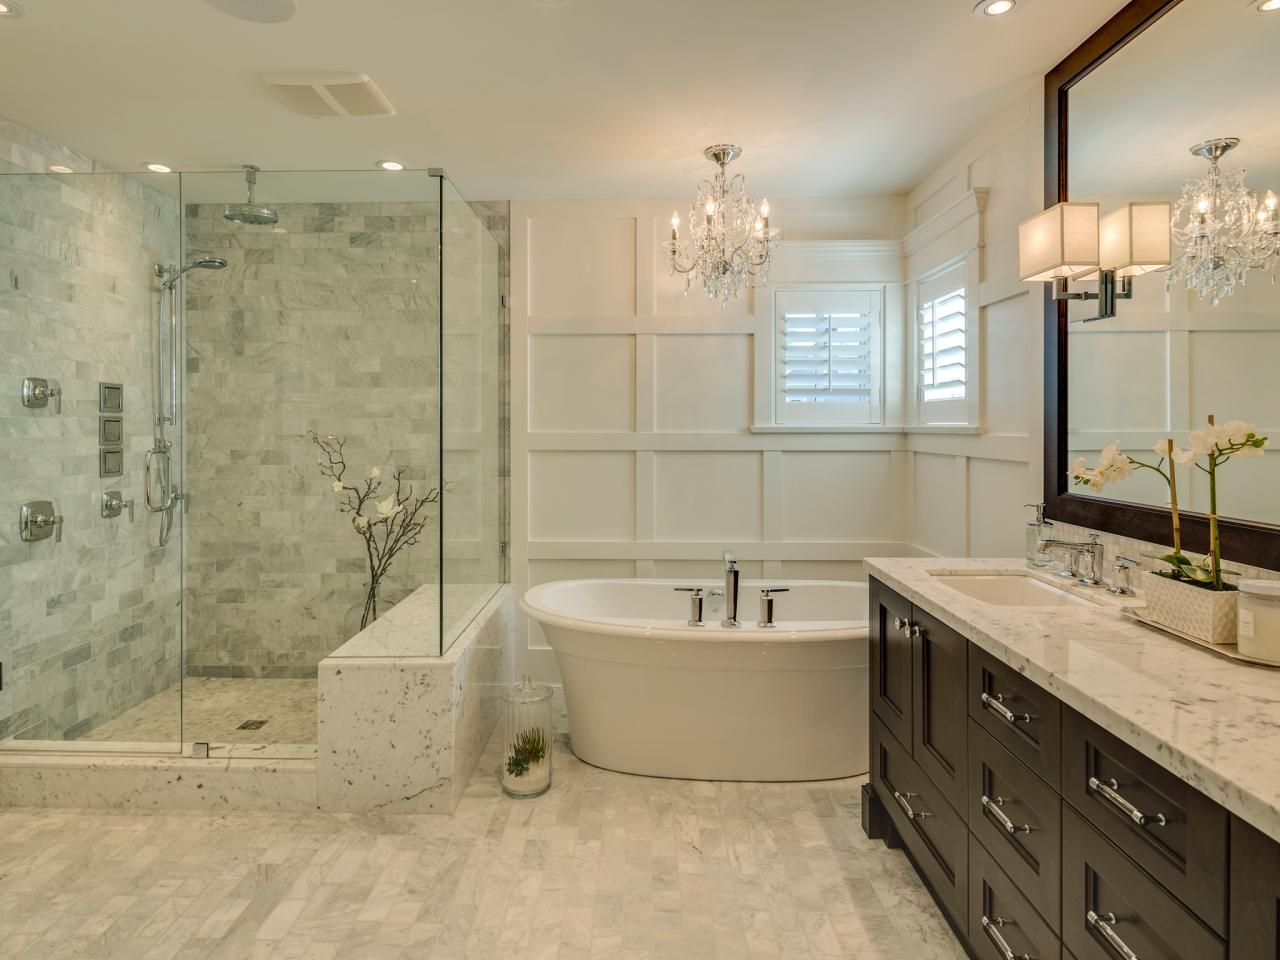 Best 25+ Master bath ideas on Pinterest | Bathrooms, Master bath ...